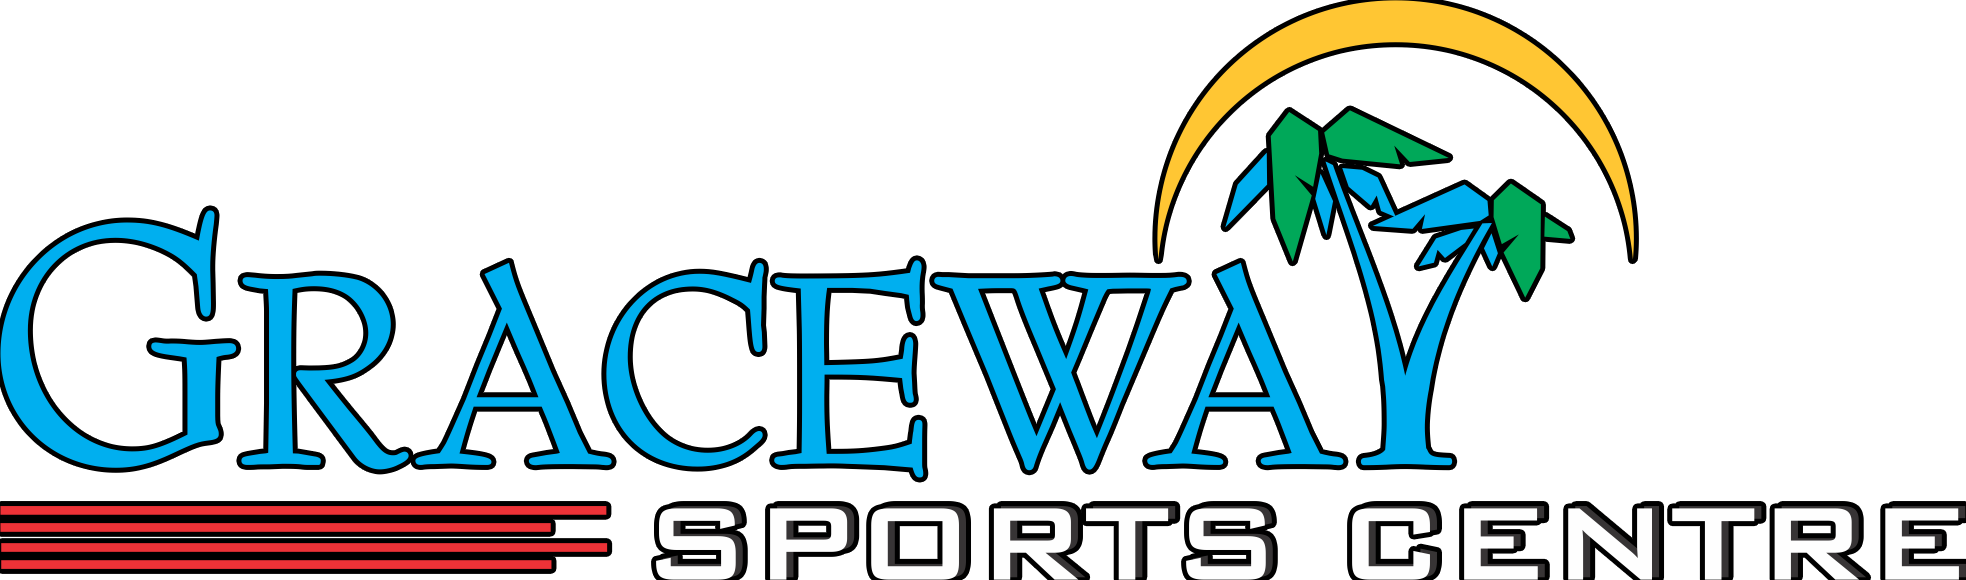 Hockey | Graceway Sports Center